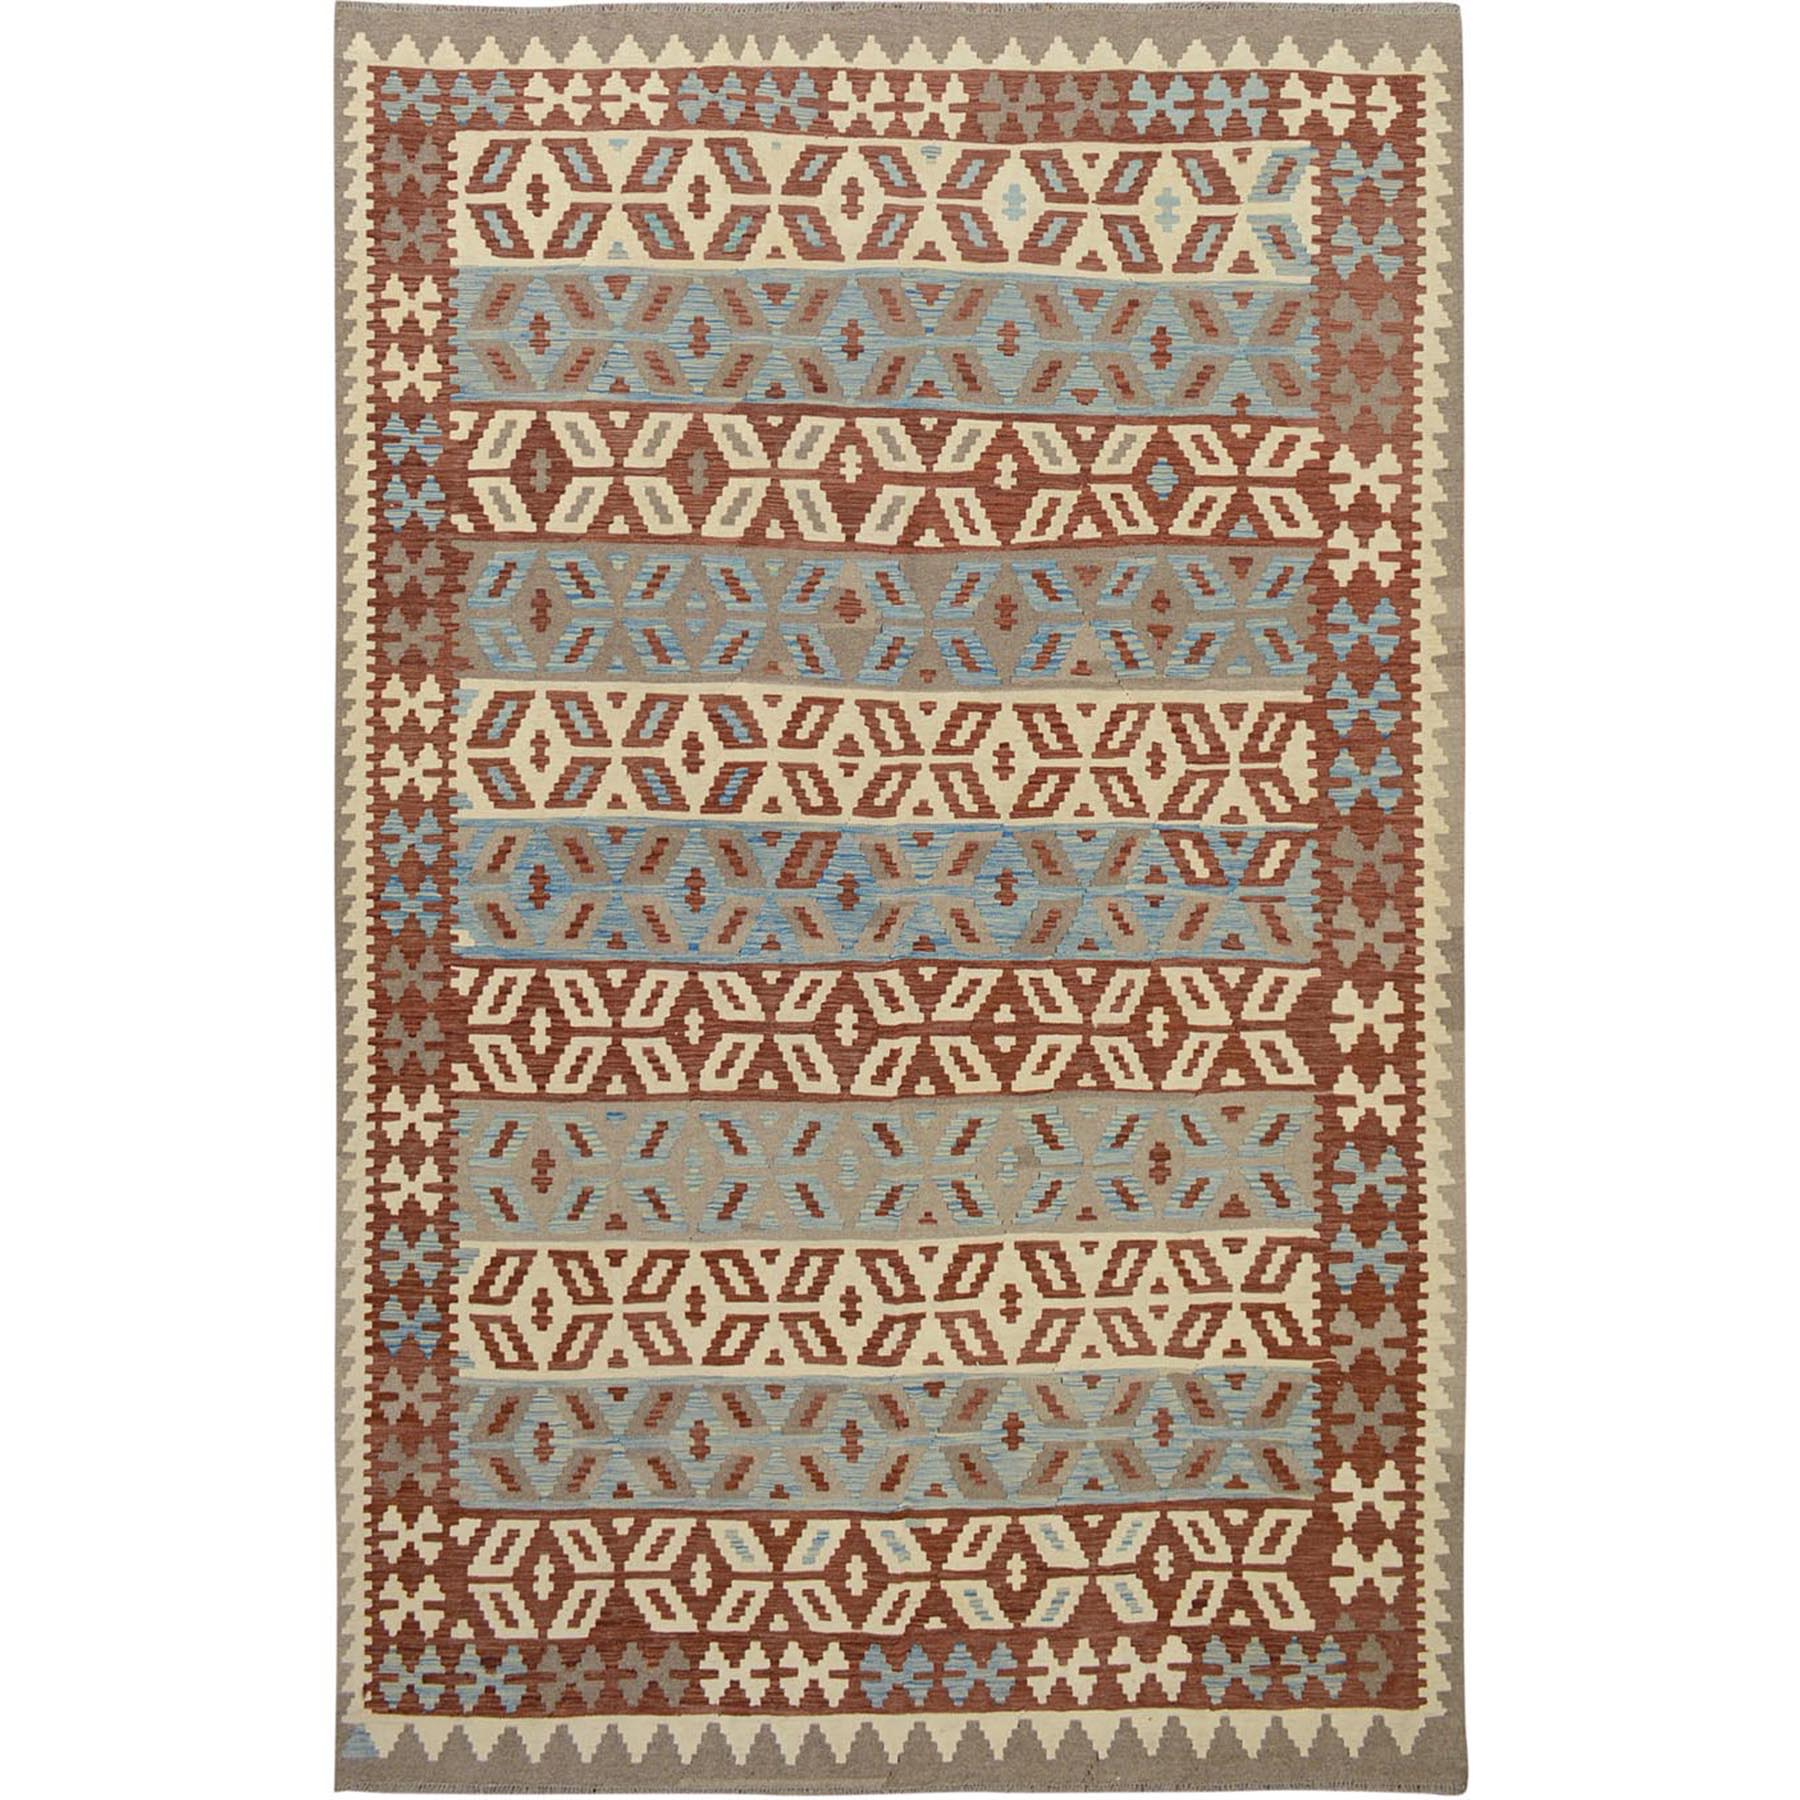 "6'8""x9'10"" Brown Reversible Afghan Kilim Vegetable Dyes Pure Wool Hand Woven Oriental Rug"